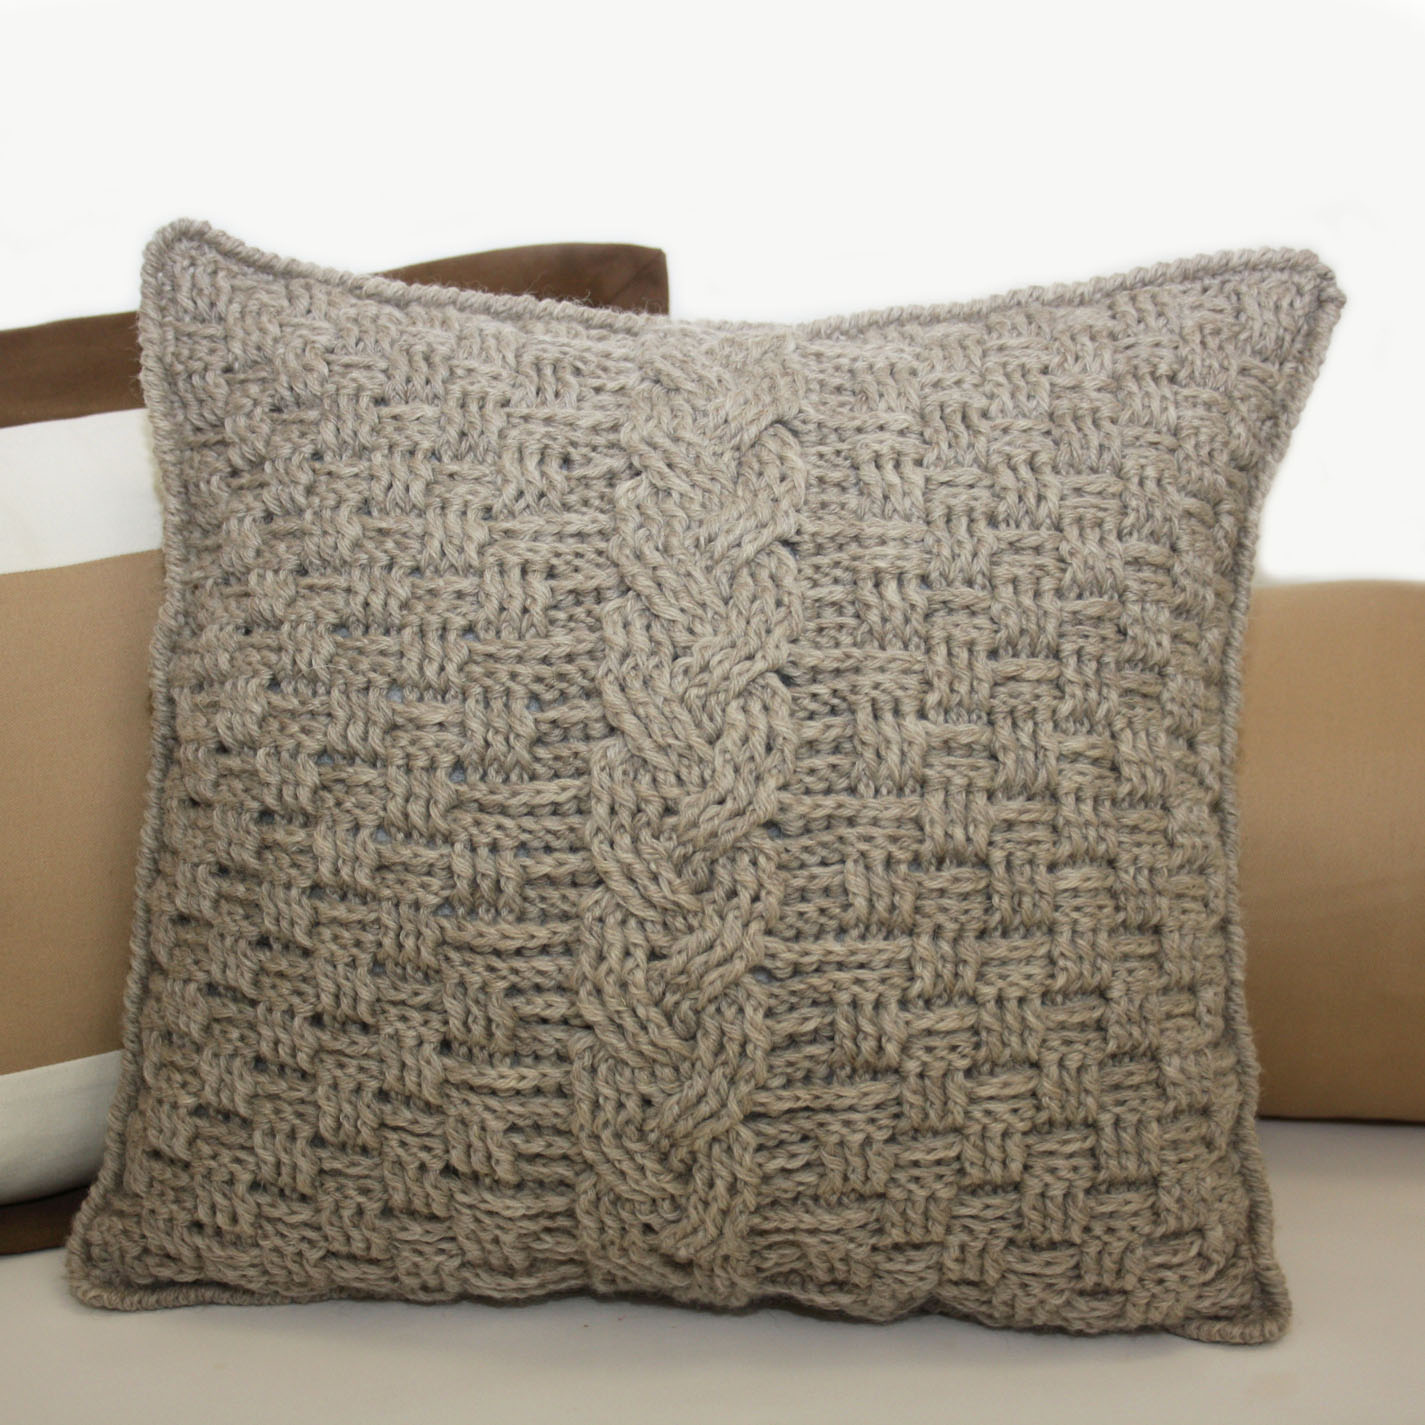 BOLSTER CROCHET FREE PATTERN PILLOW  Crochet Patterns